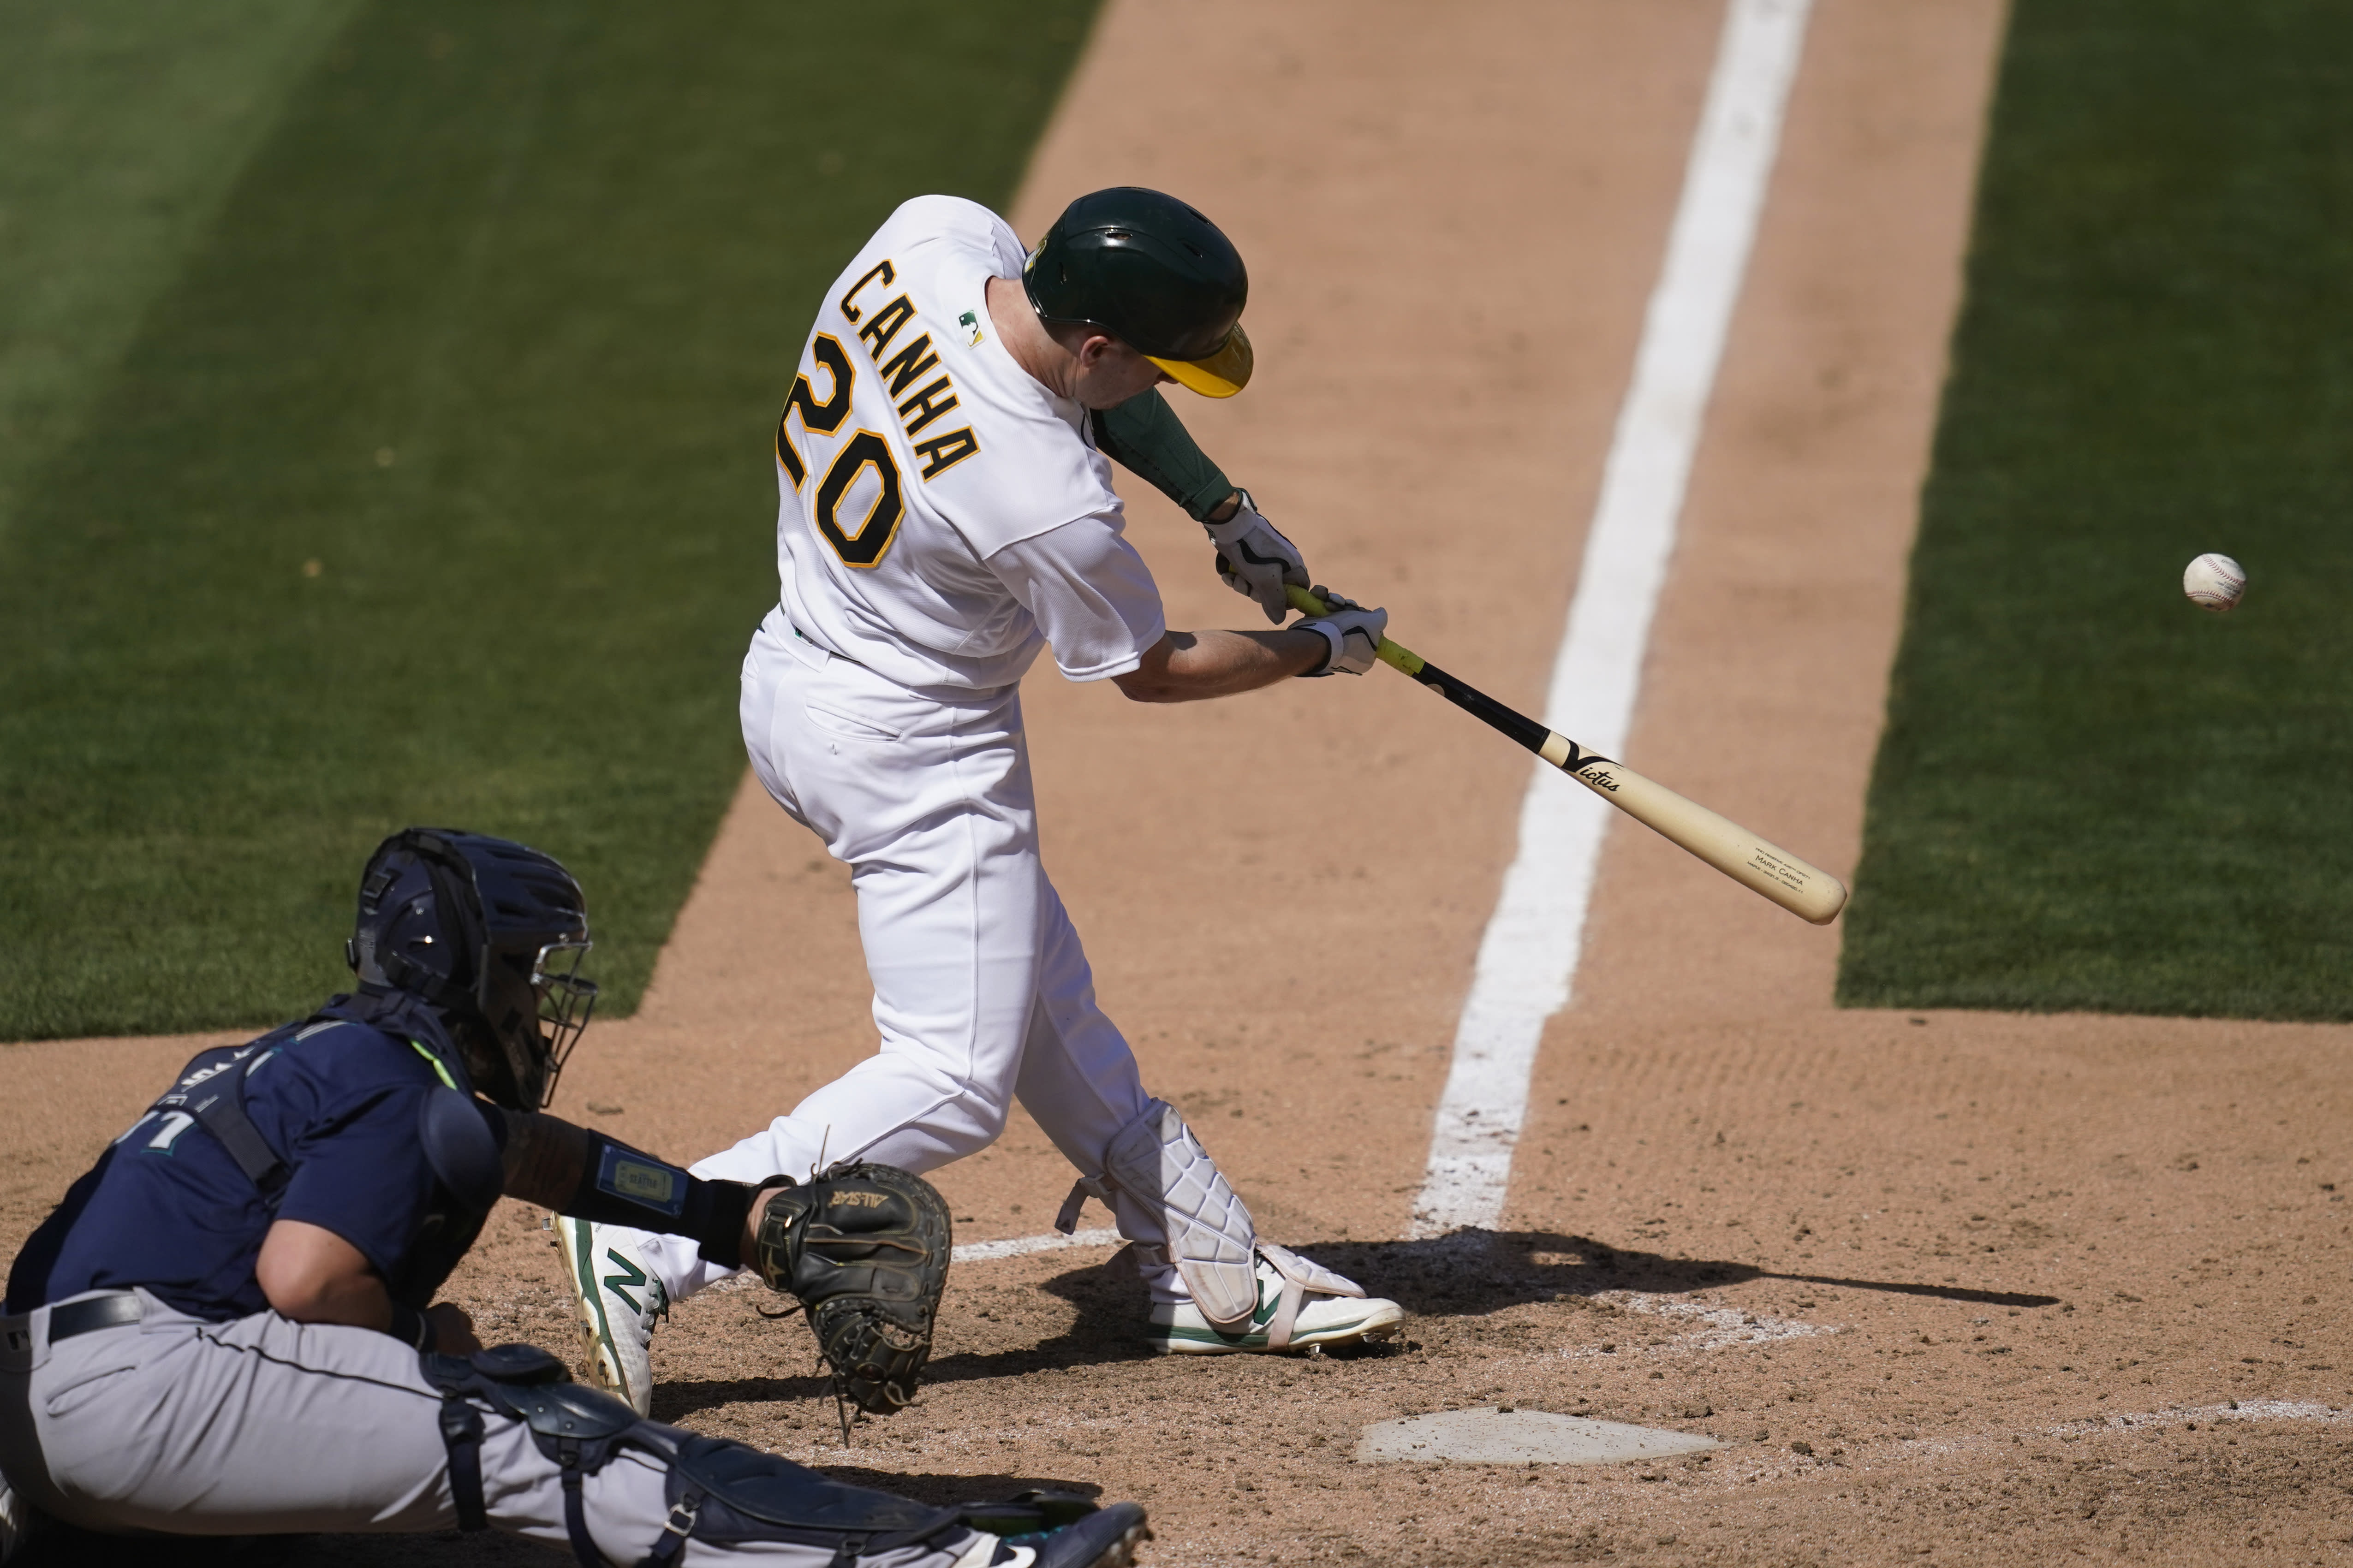 Oakland Athletics' Mark Canha (20) hits a two-run double in front of Seattle Mariners catcher Joseph Odom during the seventh inning of a baseball game in Oakland, Calif., Sunday, Sept. 27, 2020. (AP Photo/Jeff Chiu)